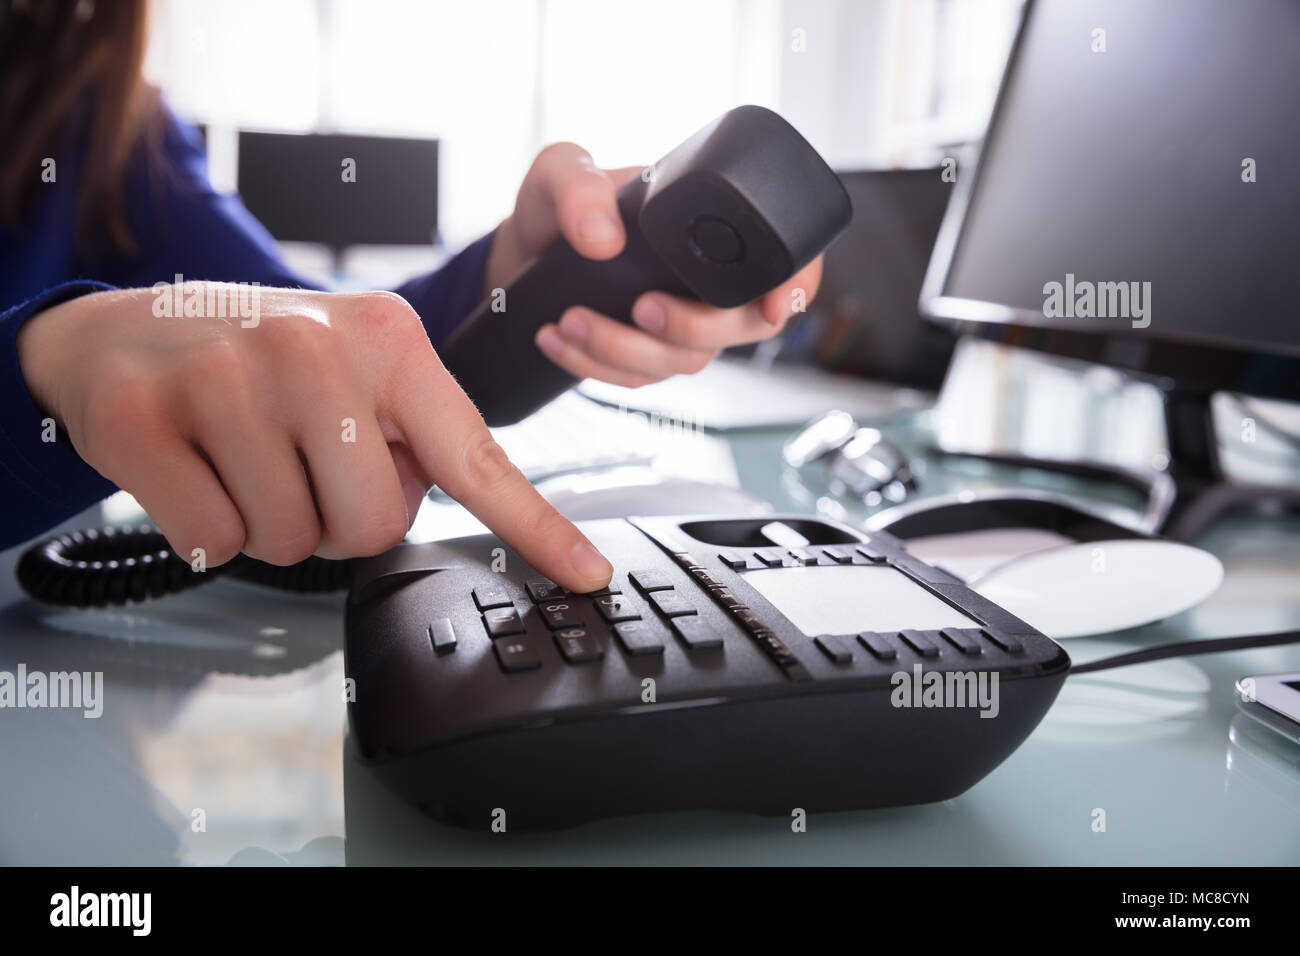 Close-up Of A Businessperson's Hand Dialing Telephone Number To Make Phone Call - Stock Image